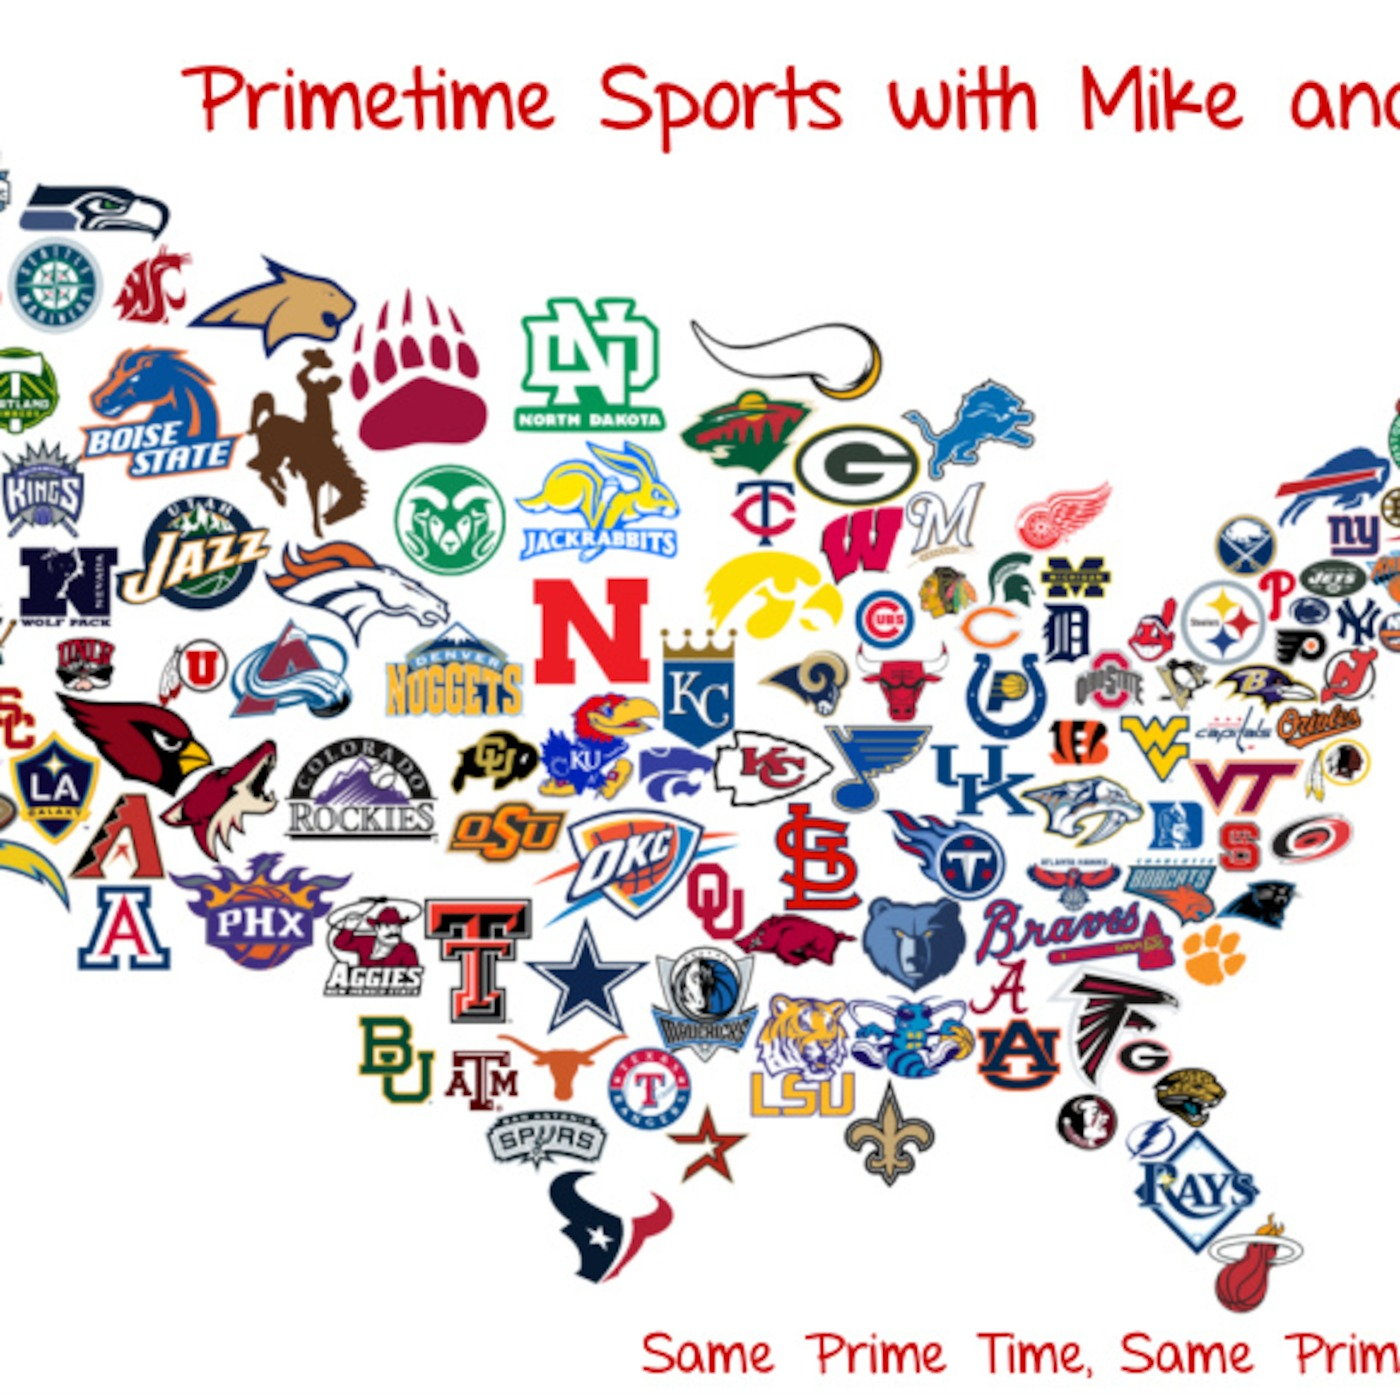 Primetime Sports with Mike and Jon